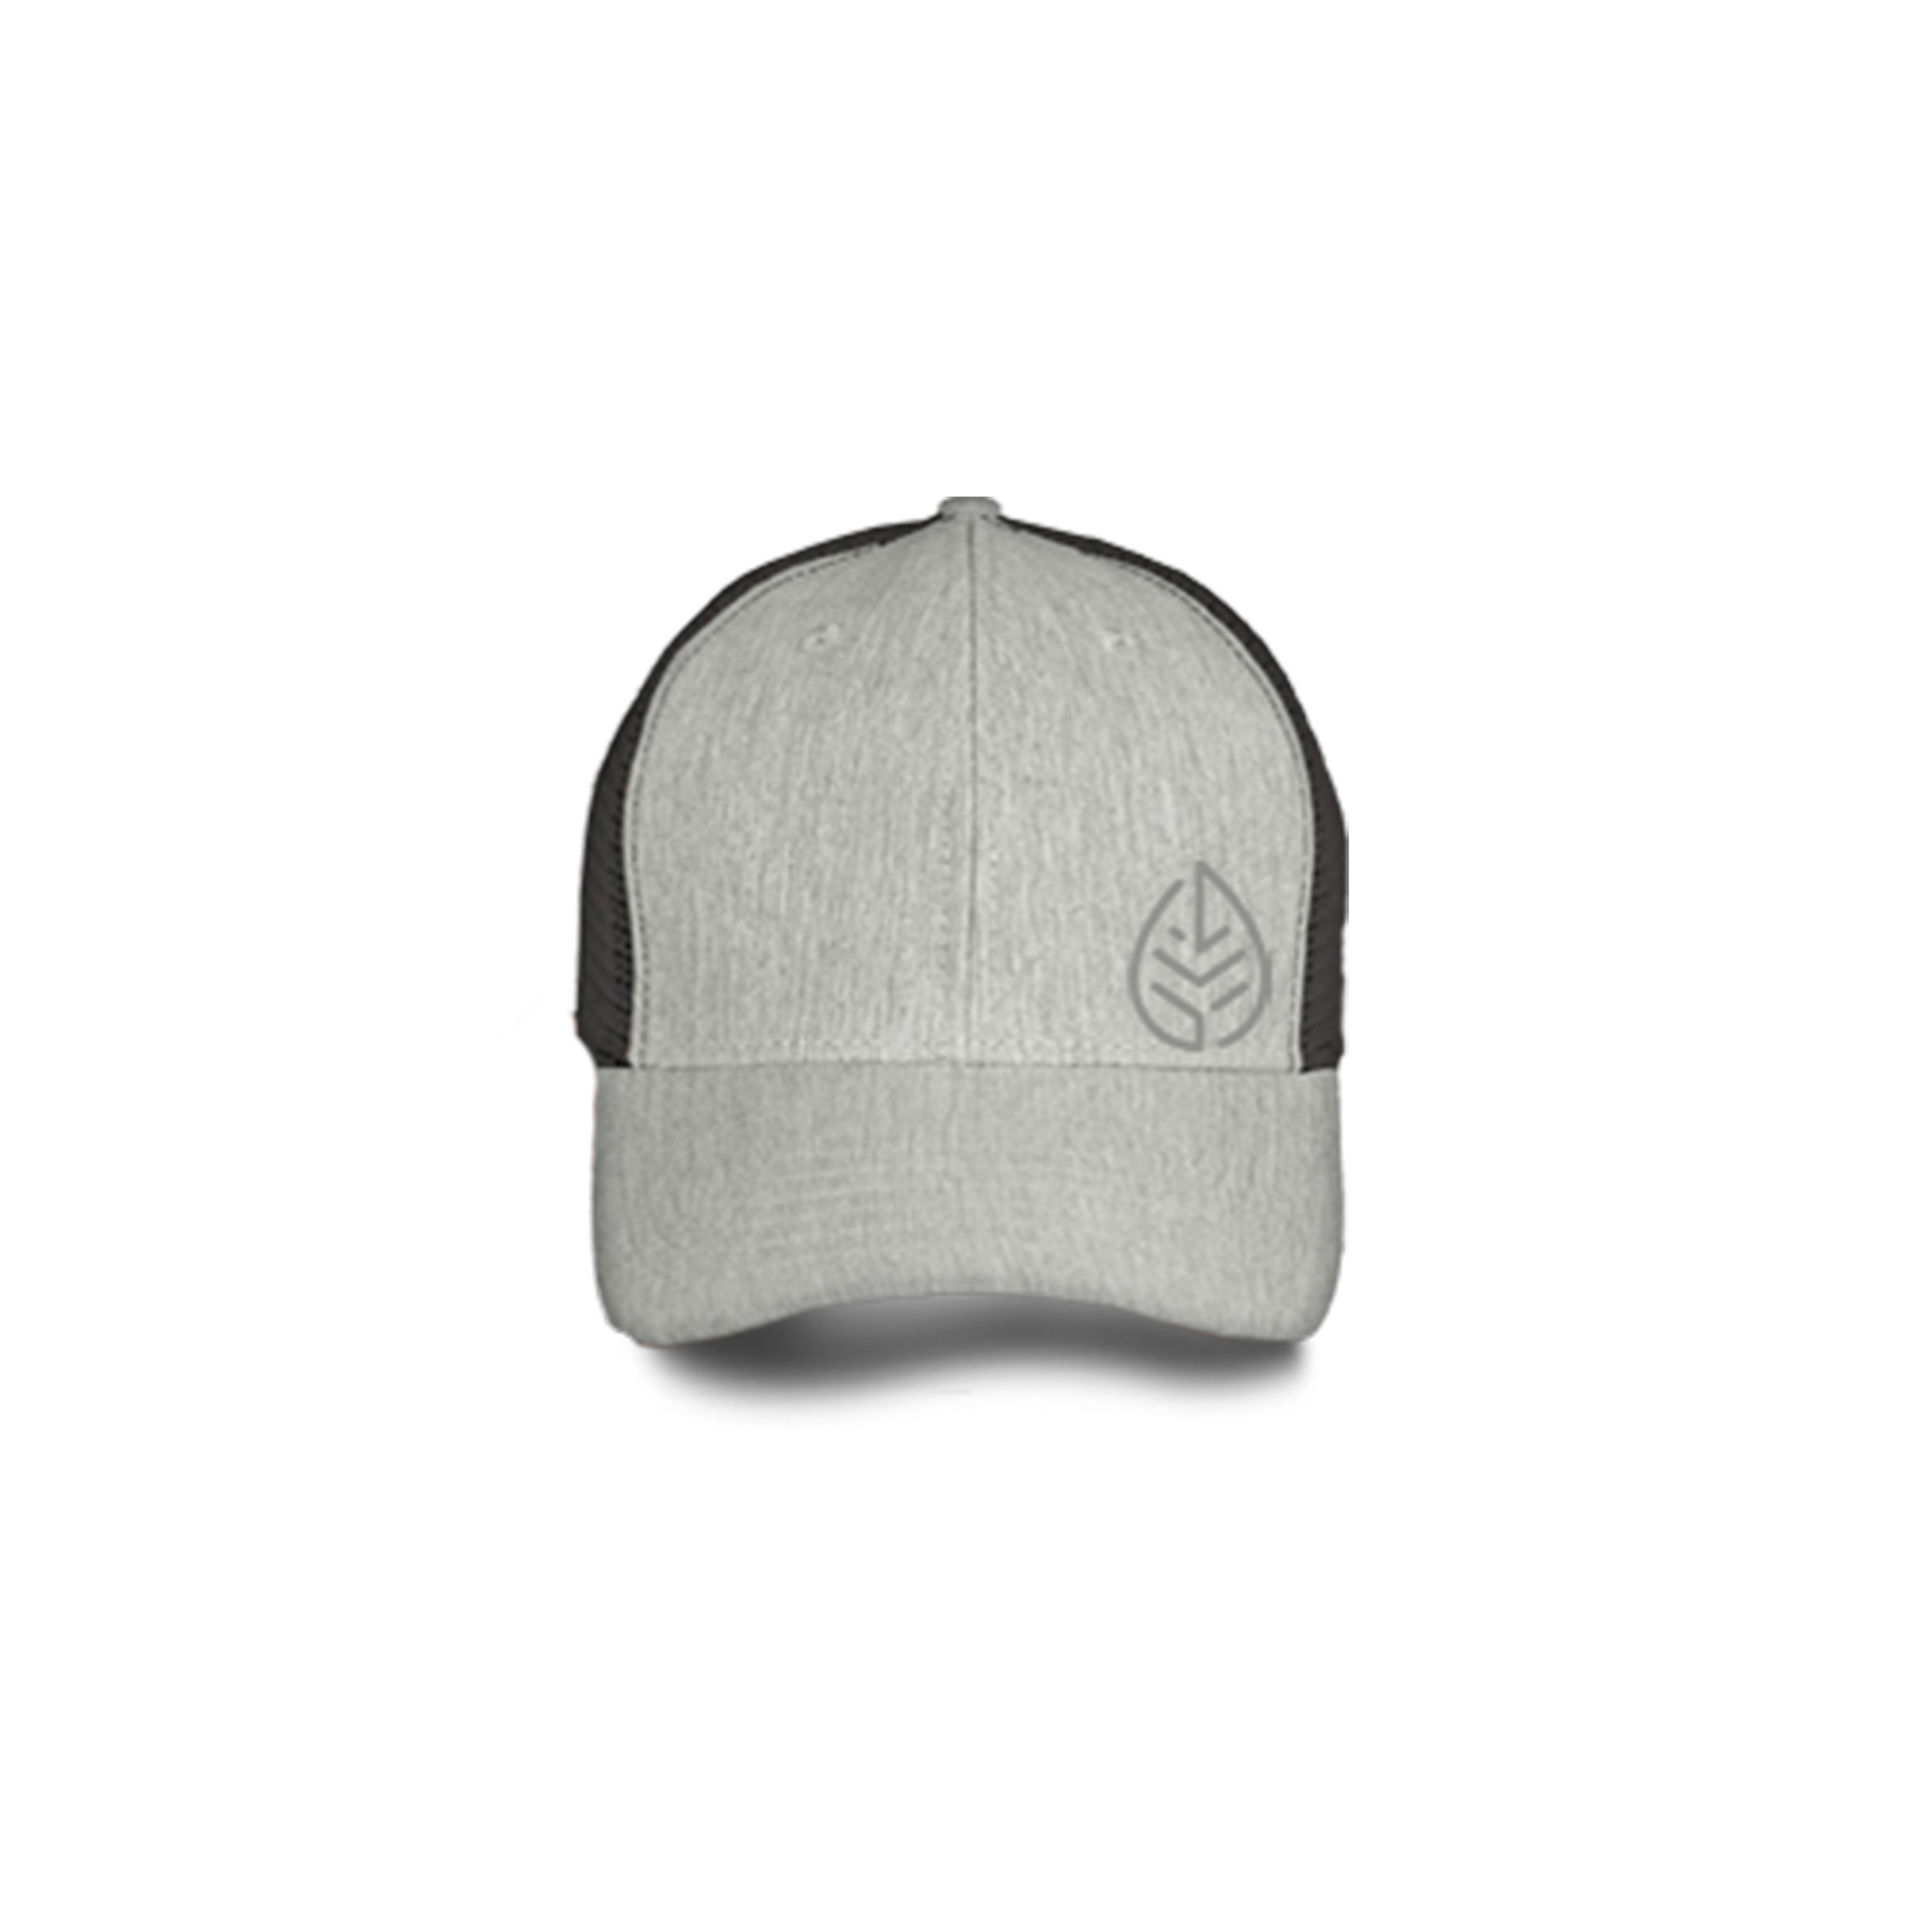 Life Church Logo Hat    $25.00   Our Life Church logo hat is a baseball style cap is built with stylish heathered front panels and a mesh trucker back.